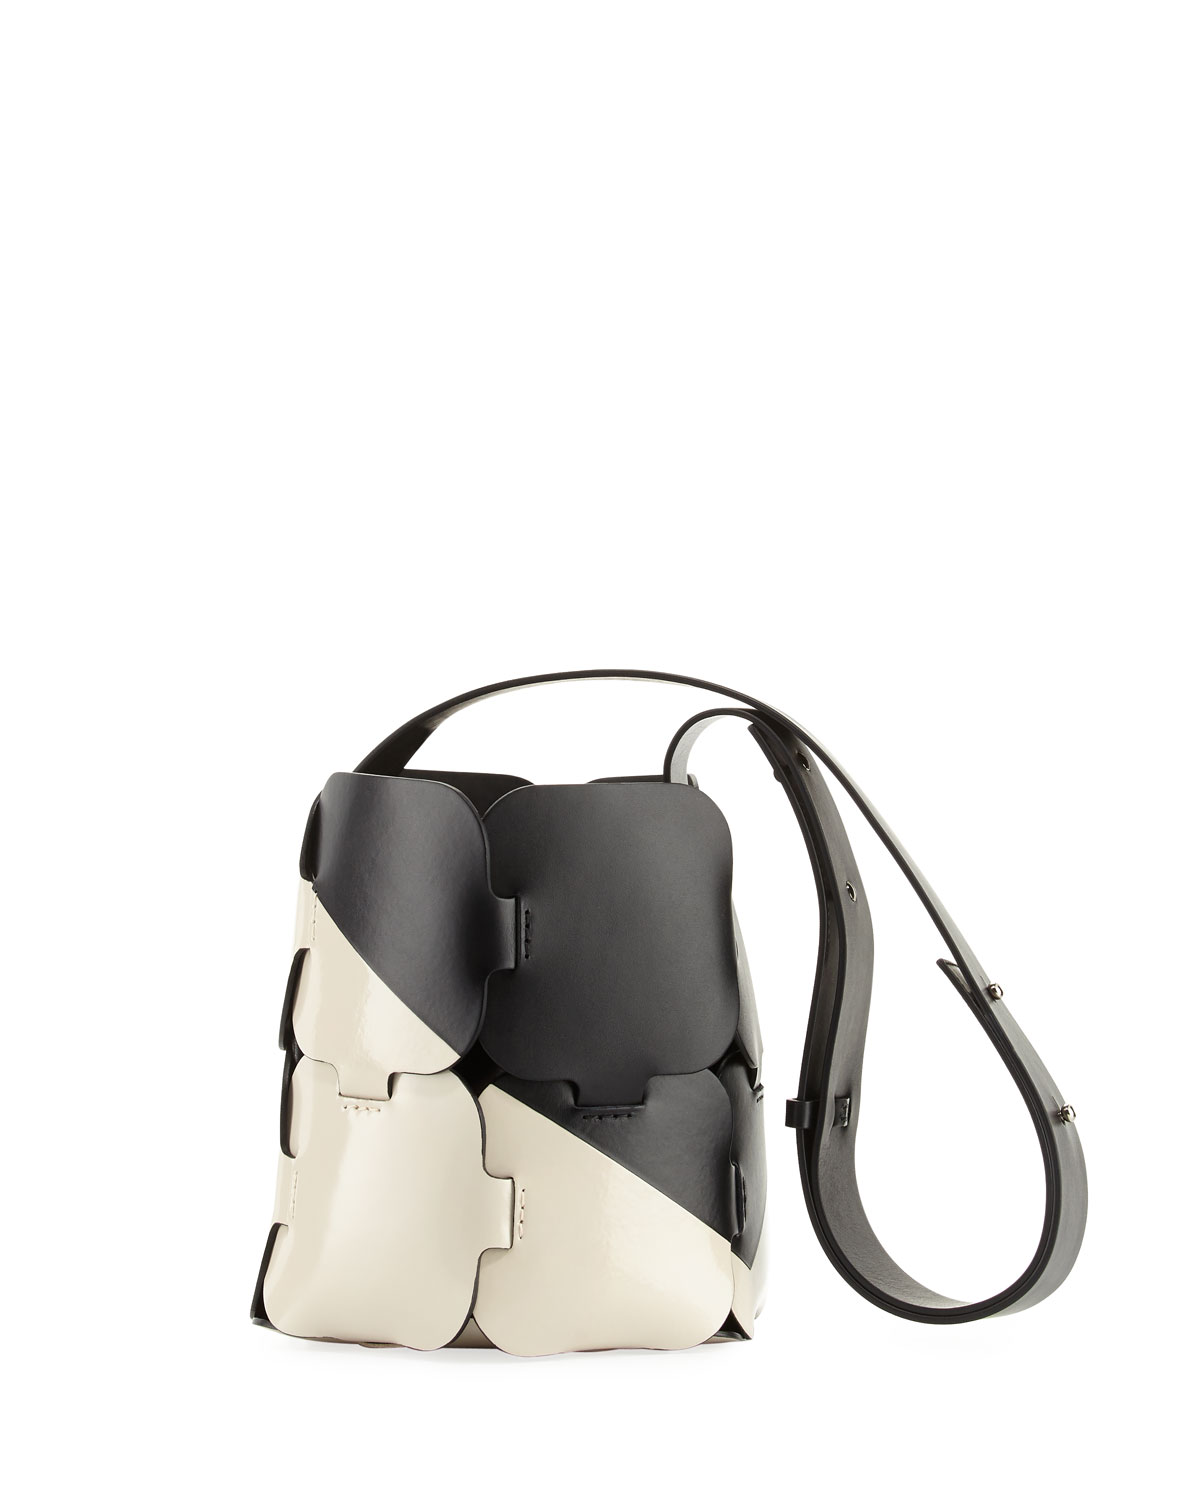 16#01 Patchwork Two-Tone Mini Hobo Bag